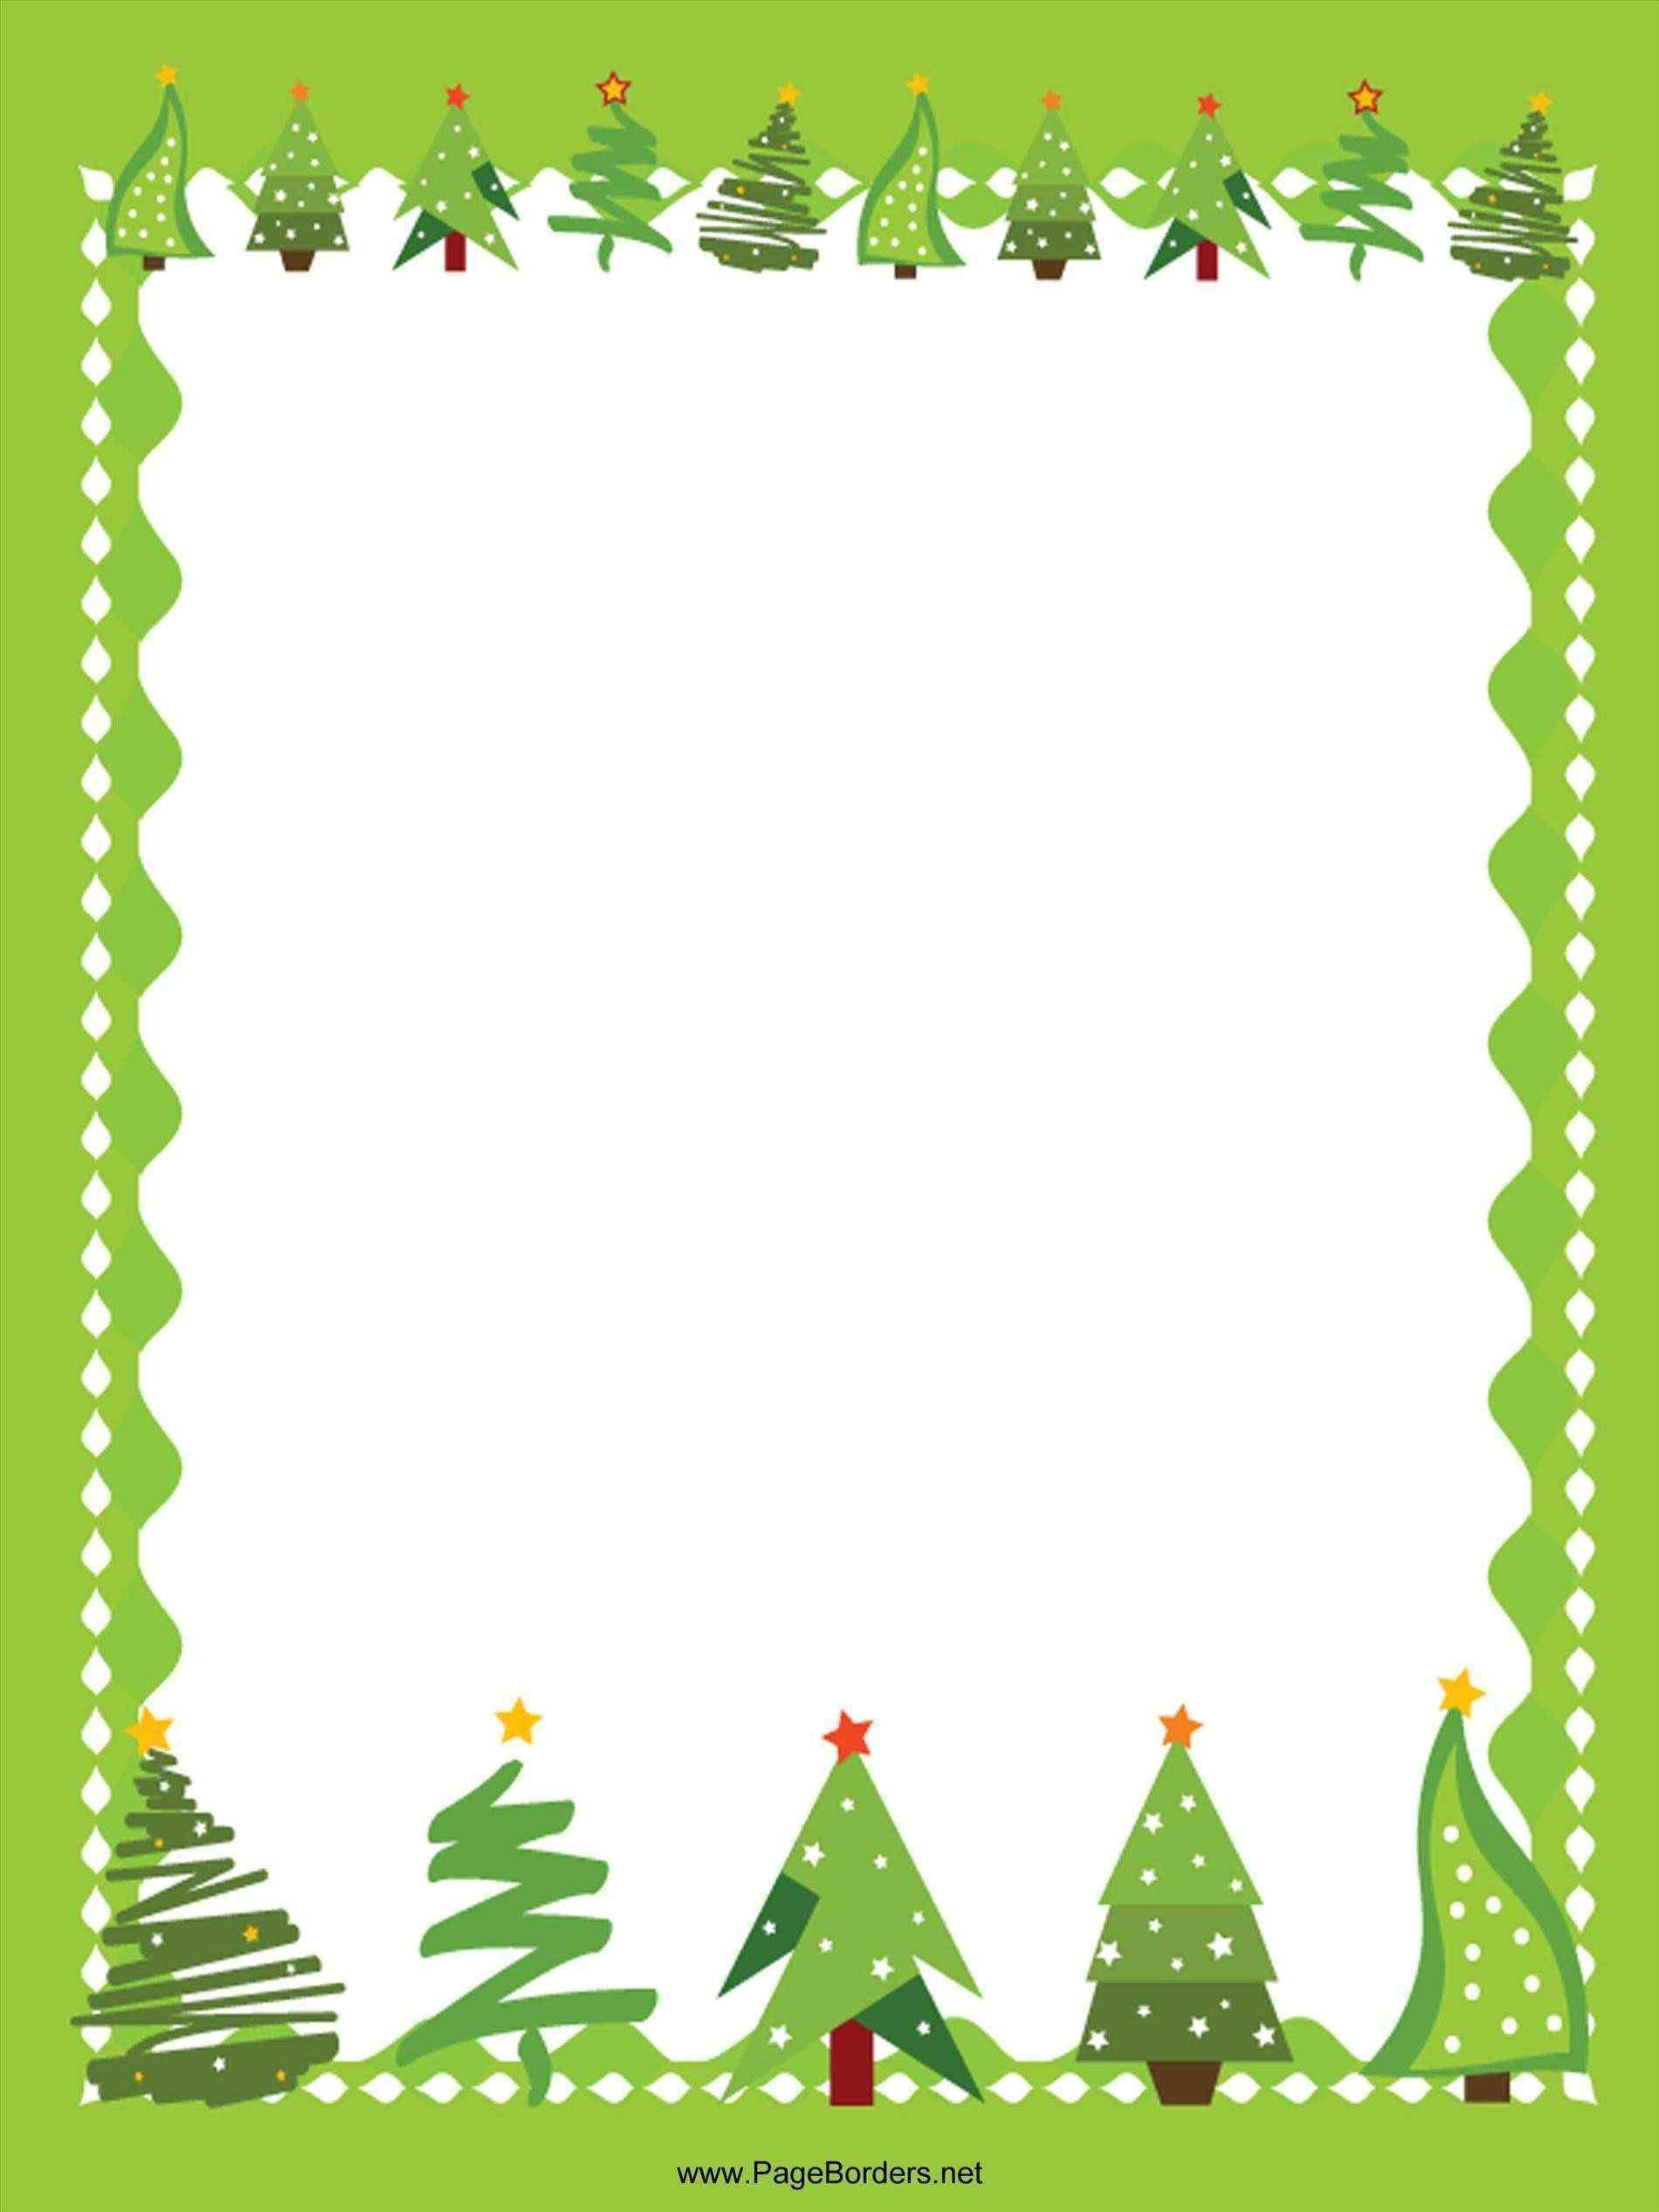 12 + Essential steps to Unique Christmas Border Clipart Landscape.